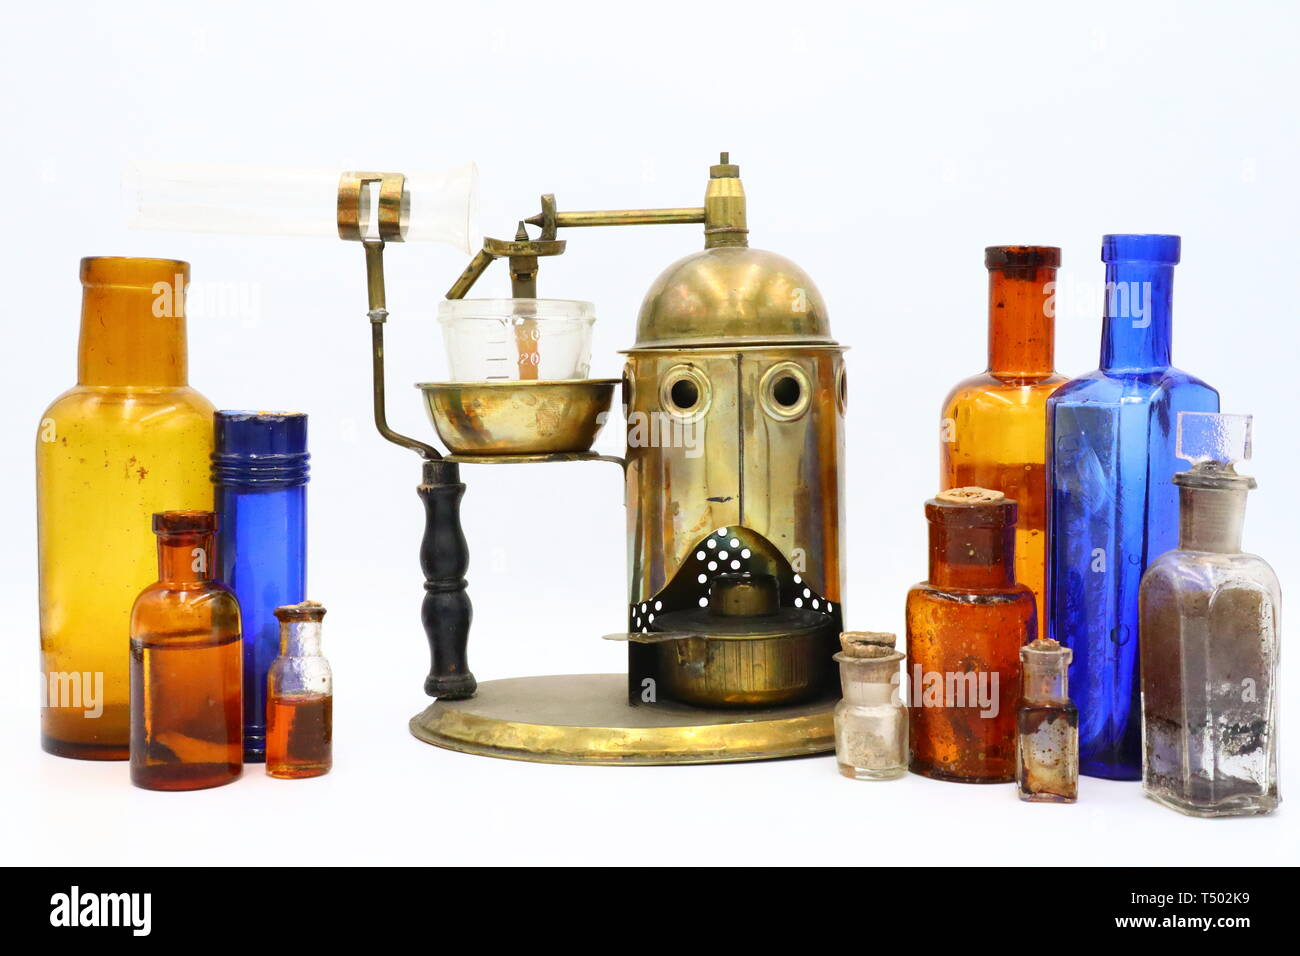 Antique Aerosol Atomizer and Medicine Bottles, Victorian era - Stock Image